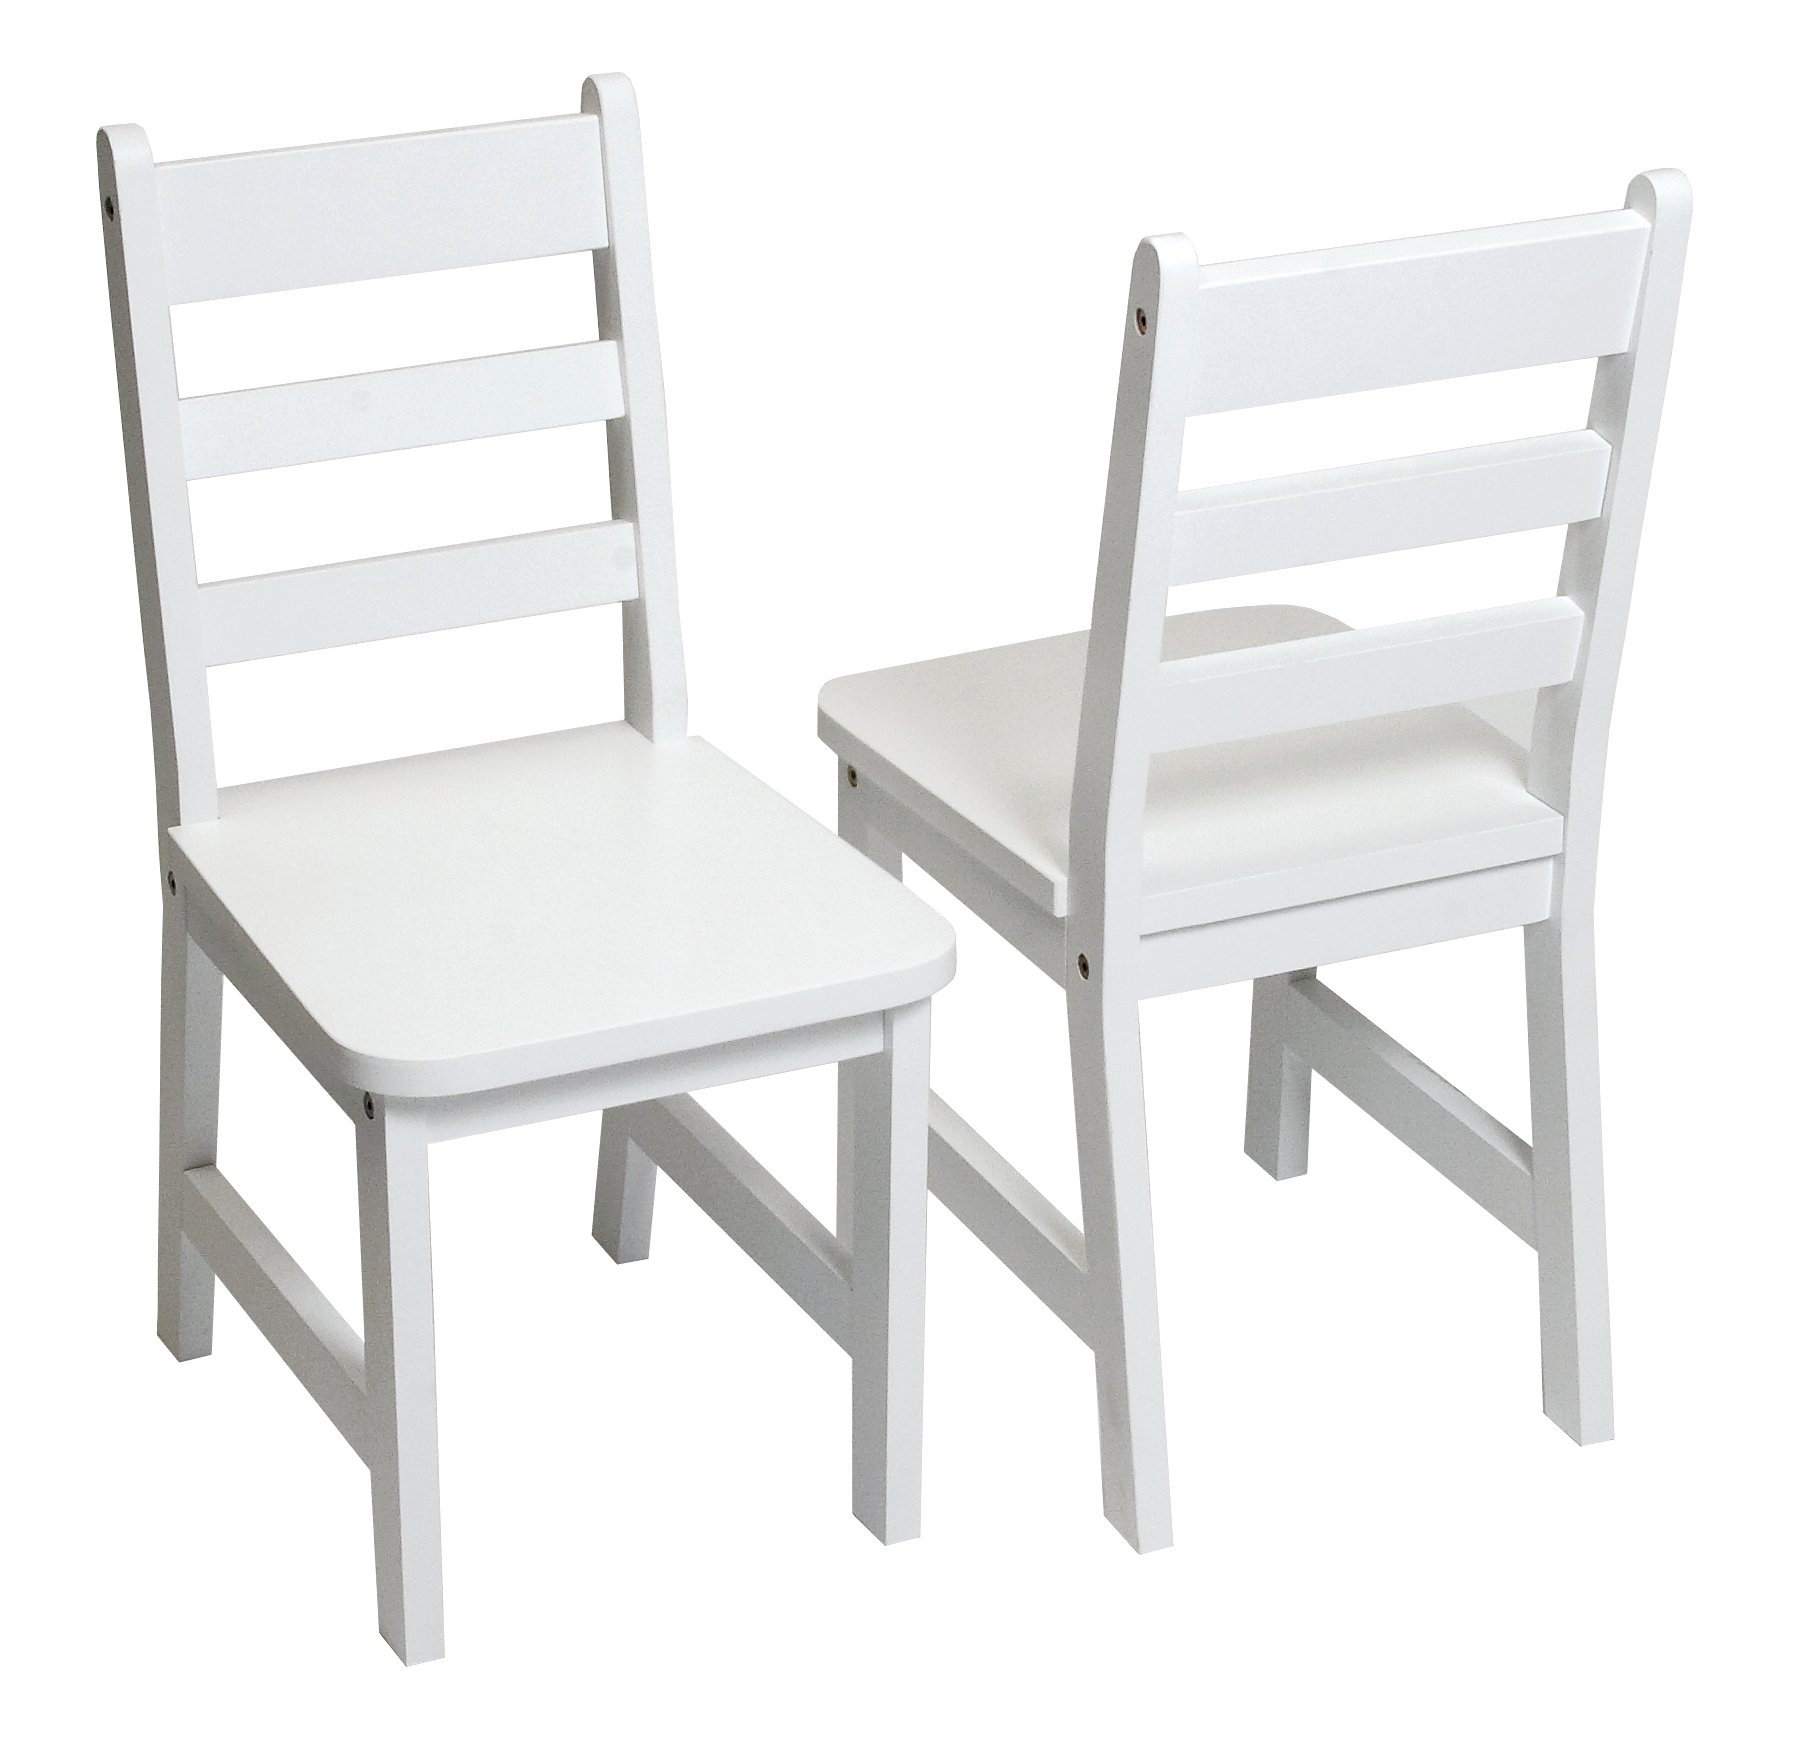 Lipper International 523-4W Child's Chairs for Play or Activity, 12.38'' W x 15'' D x 26.63'' H x 25.5'' H, Set of 2, White by Lipper International (Image #1)